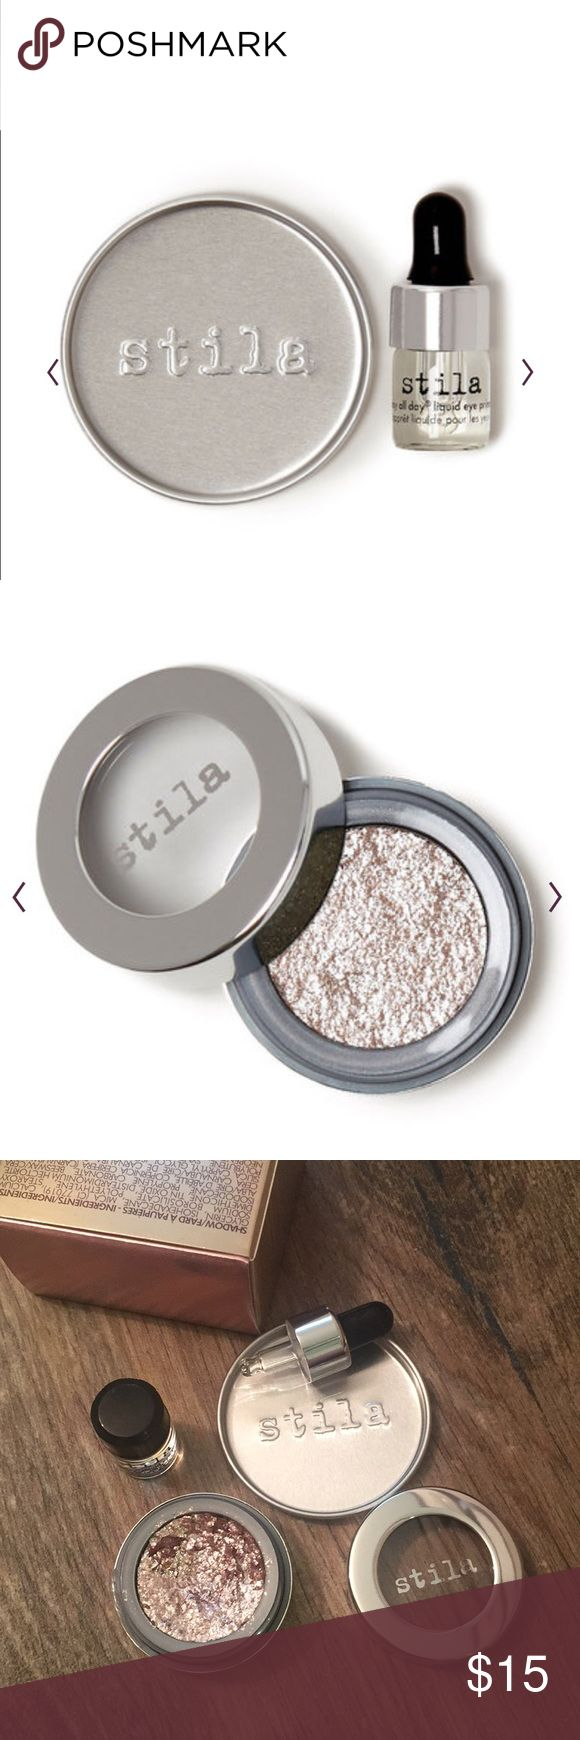 Stila Magnificent Metals Foil Finish Shadow Swatched once, never used. Create metal eyes that mesmerize with our Magnificent Metals Foil Finish Eye Shadow, a striking cream-to-powder shadow with a multidimensional metallic finish. Inspired by the runway, our one-of-a-kind formula is packed with rock-and-roll sparkle to achieve a variety of effects, from a light wash of shimmer to an opaque metallic finish. It also comes with a mini Stay All Day® Liquid Eye Primer & handy mixing tray. Shade…